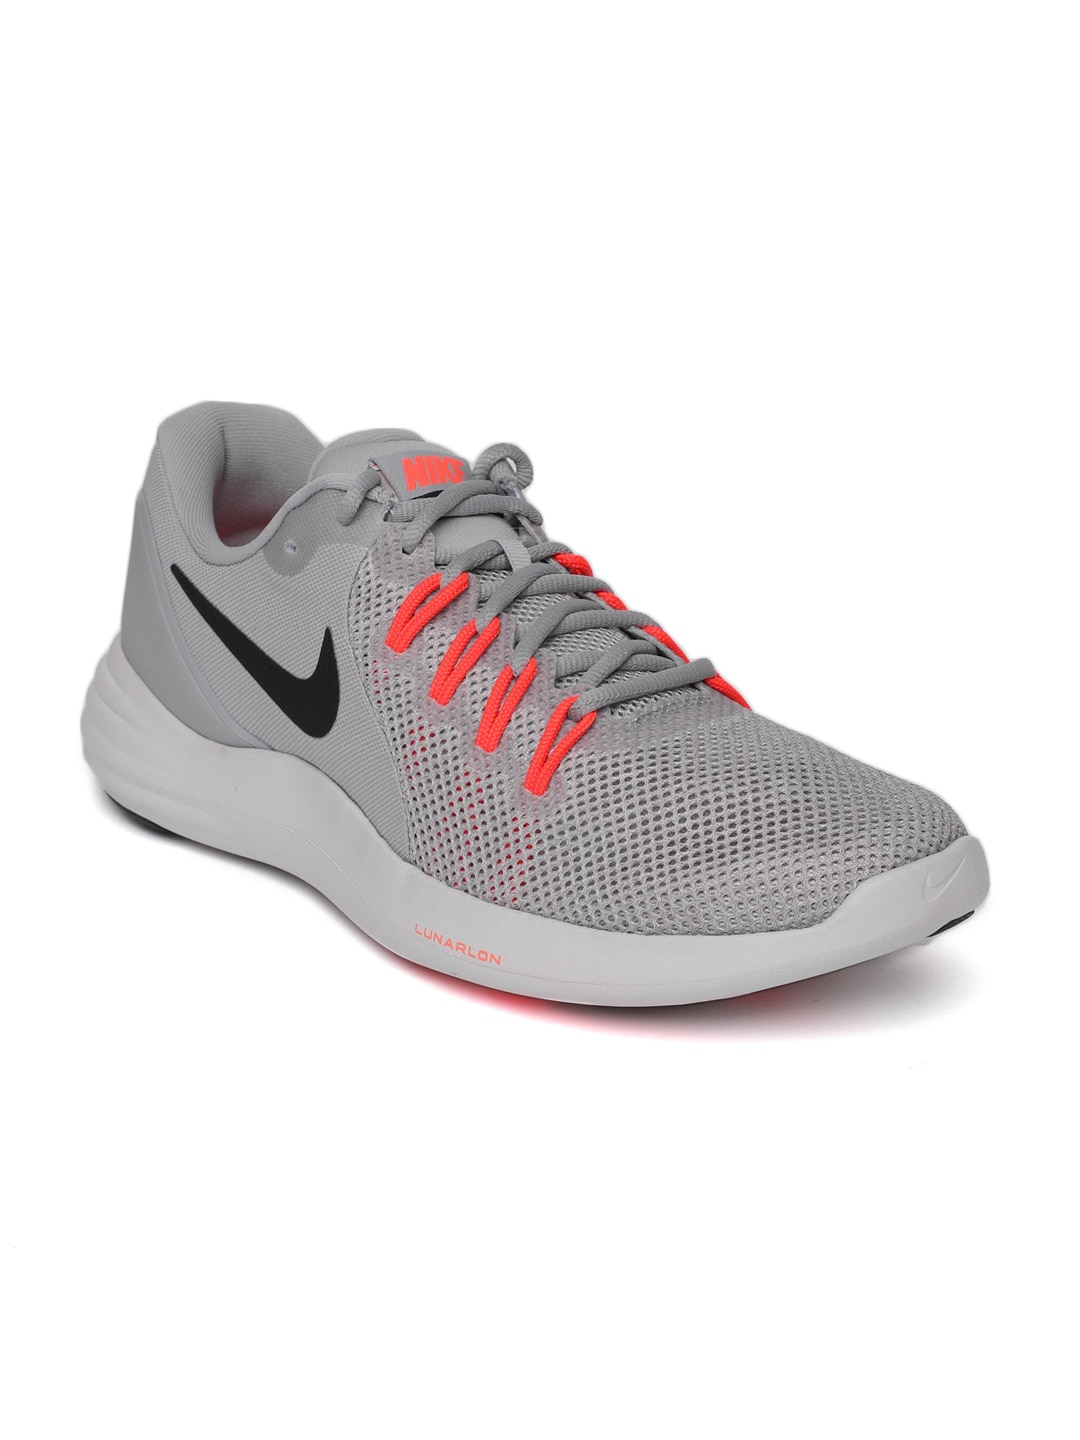 6609f5e9db Nike Mens Shoes - Buy Nike Mens Shoes online in India